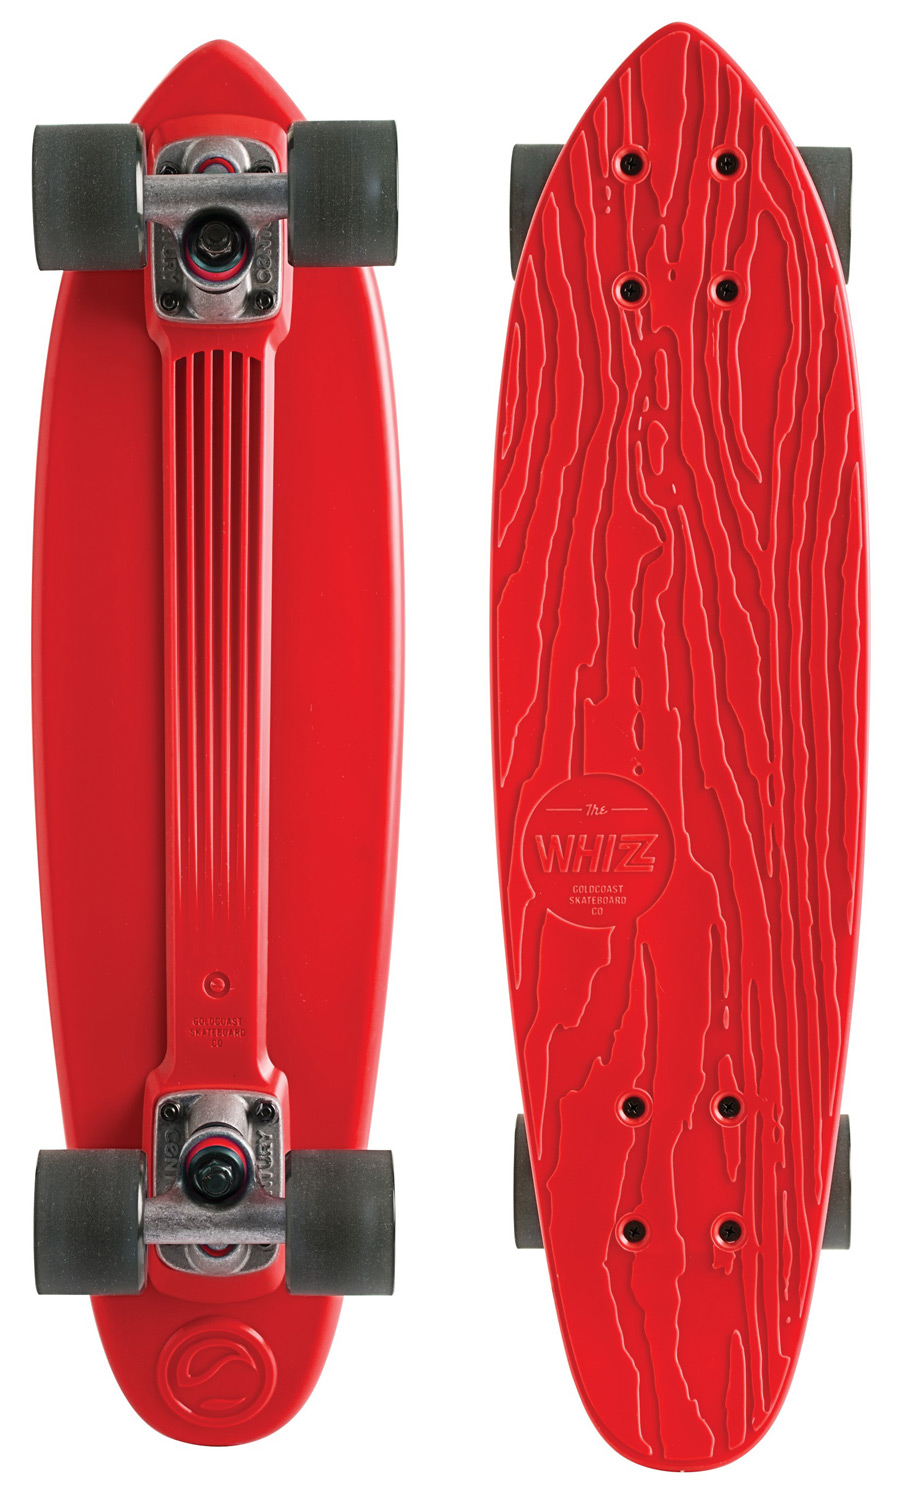 "Skateboard The soft and springy feeling of a plastic board cannot be beat. The Whizz is a classic ""banana"" board inspired cruiser with a distinctive GoldCoast touch. We use recycled ABS plastic, to give objects that did not get to be skateboards the first time around a better life through reincarnation. The board shape is modeled after our ""Pan"" shape, which is a 24"" cruiser with a small kicktail. The Century 79mm Trucks and 60mm ""Cherry Bomb"" Wheels round out the complete with full respect to the past, while keeping the future well in mind.Key Features of the GoldCoast Whizz Longboard Complete Red:  24"" Long X 6.5"" Wide, 14"" Wheelbase   Recycled Plastic  Cherry Bomb Wheels, 60Mm, 78A  Century 79Mm Trucks  93A Bushings  Genuine Goldcoast A7 Bearings - $58.95"